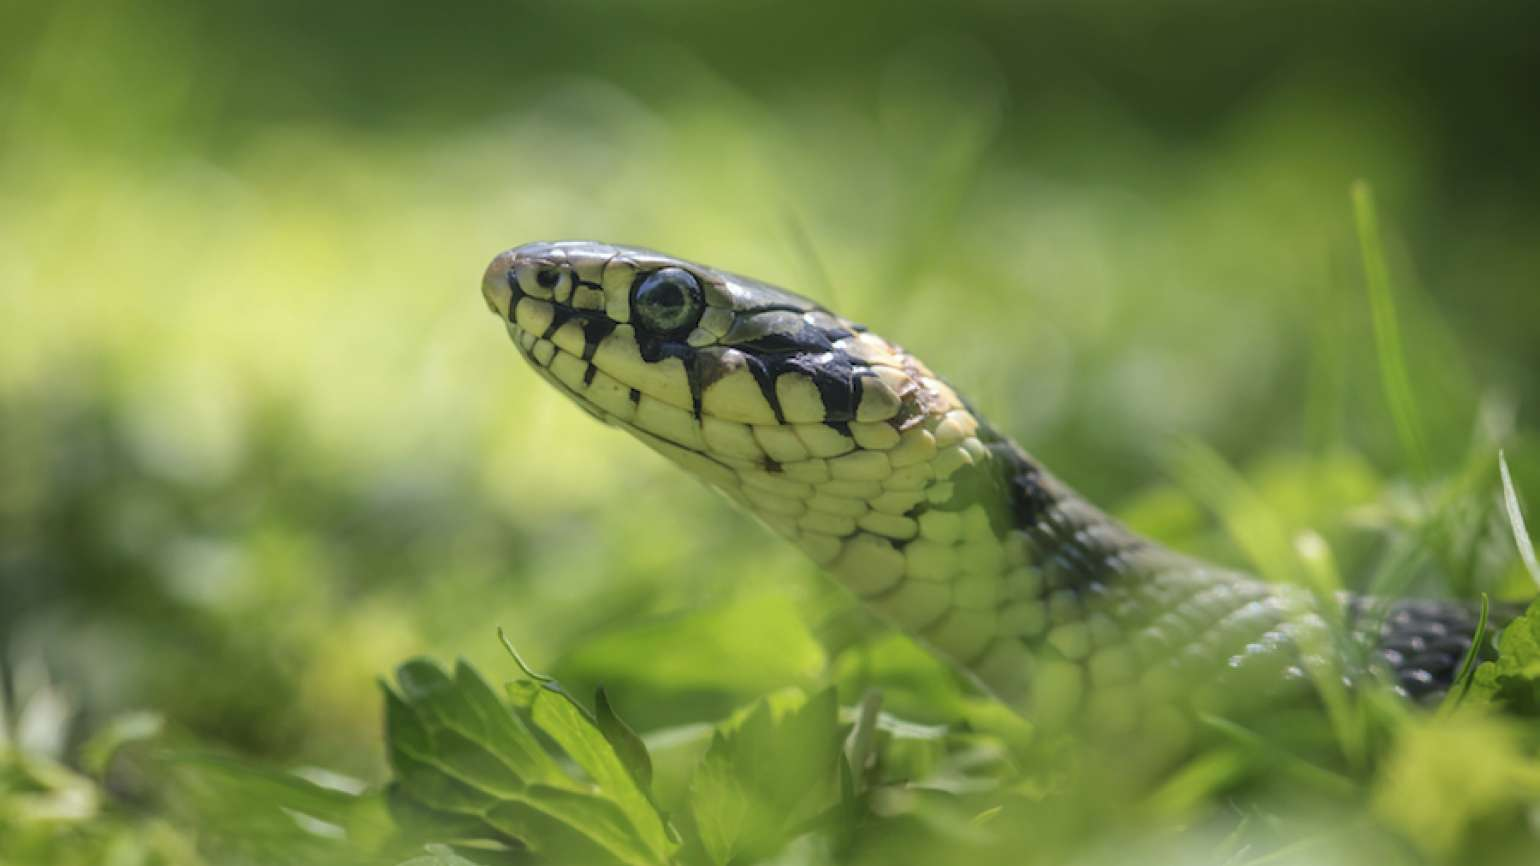 Snake in the grass. Thinkstock.